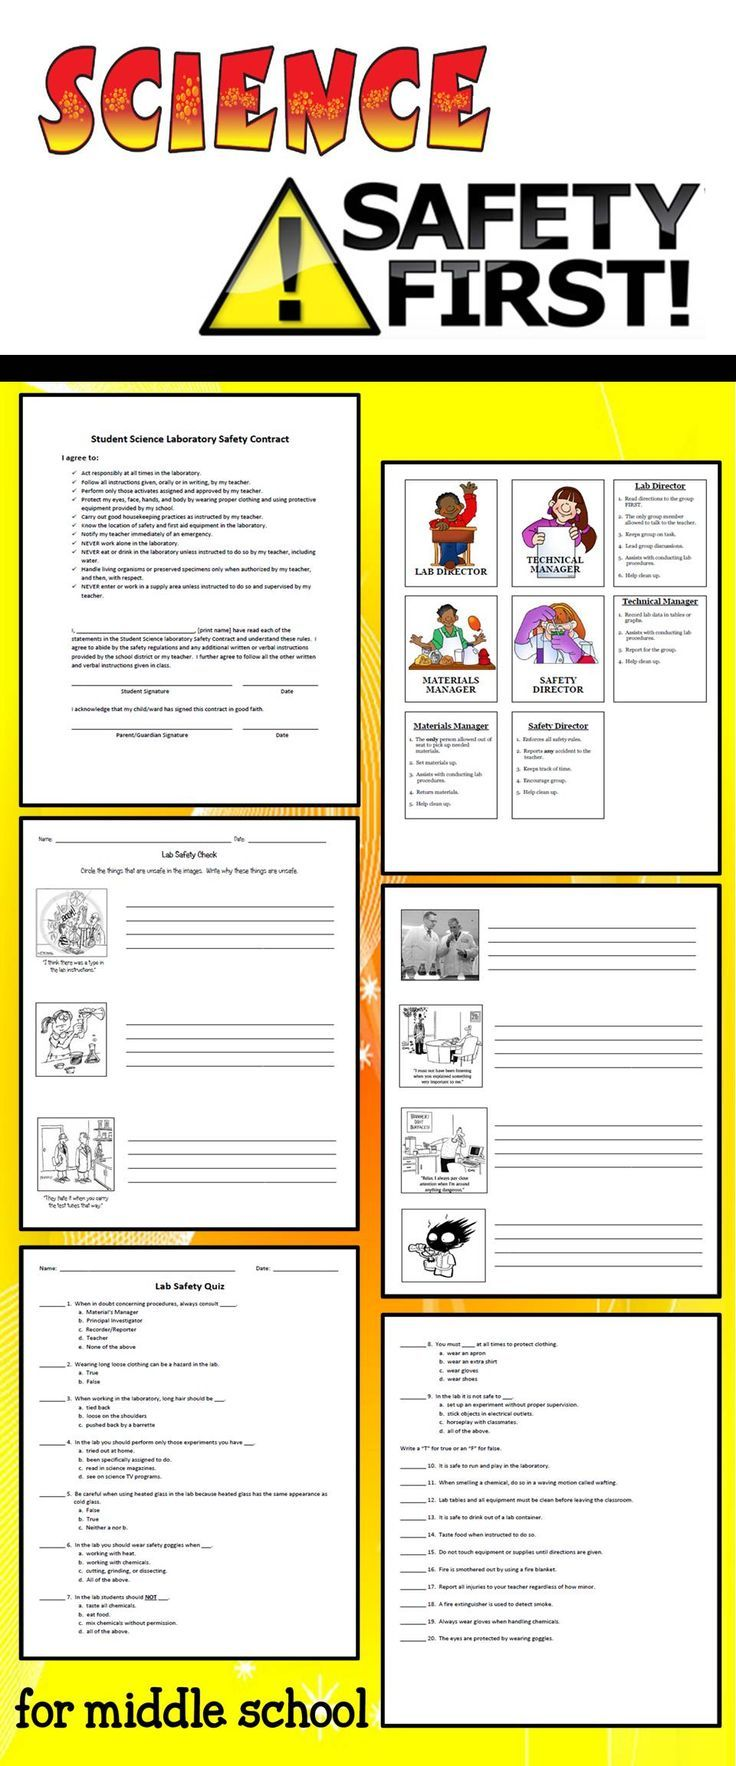 Safety quizzes, worksheets, contracts, and more! Great for